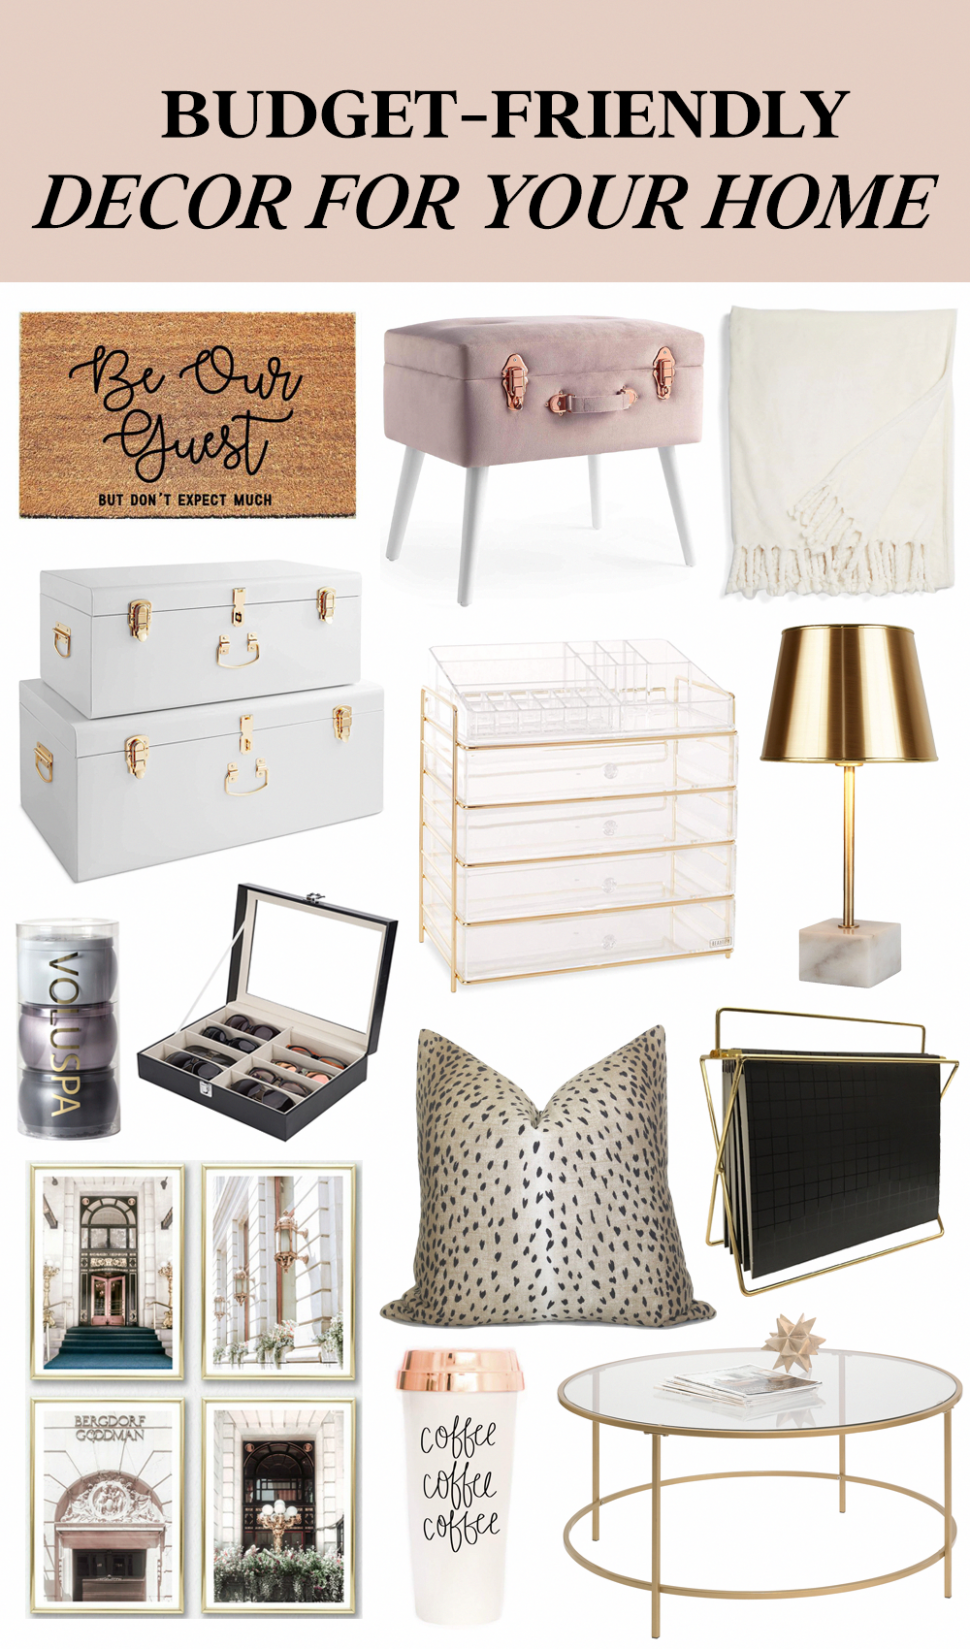 Affordable Home Decor | Budget-friendly decor for your home or ...